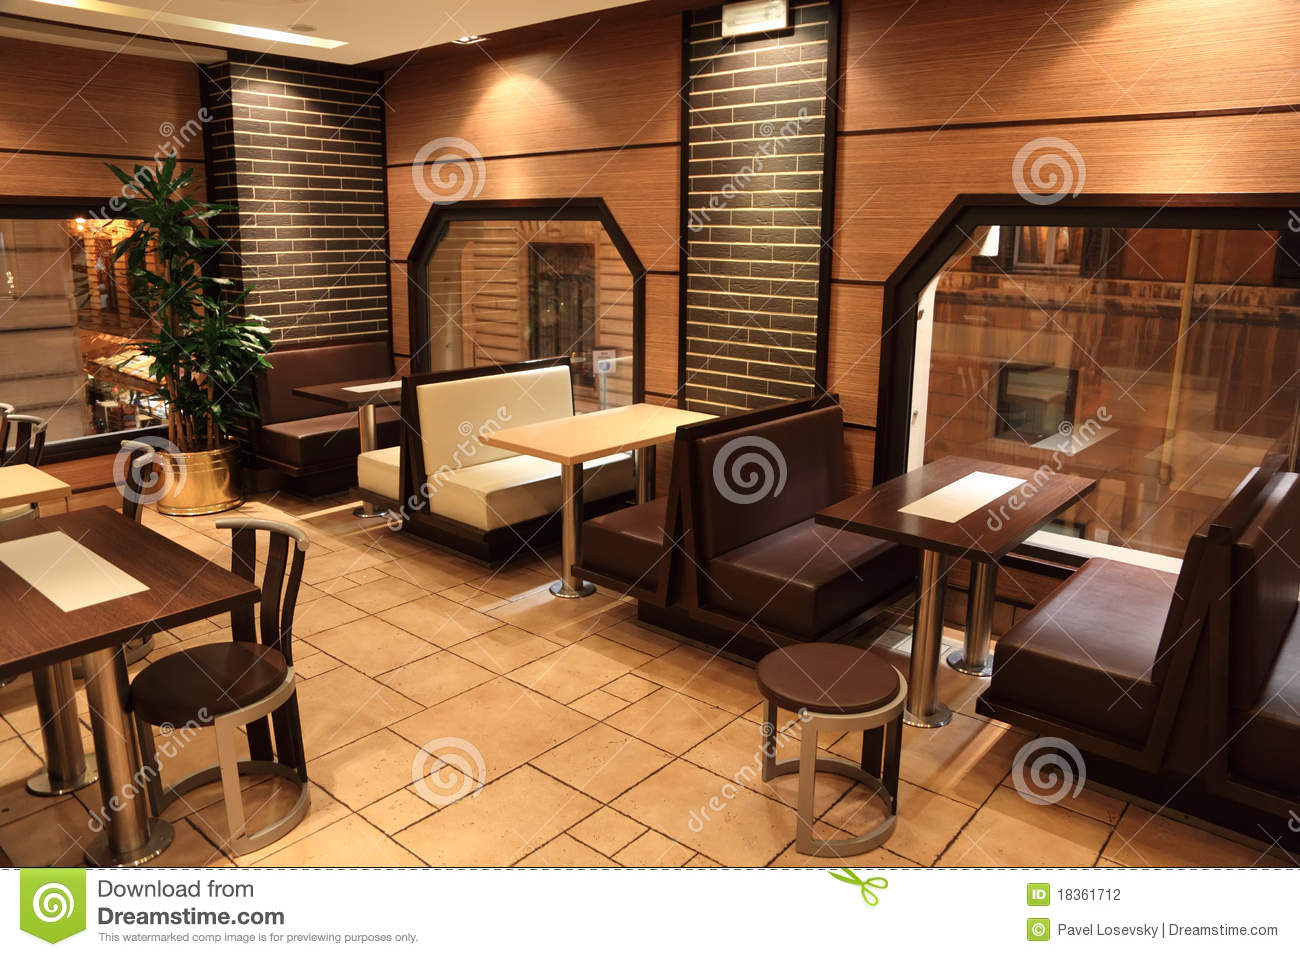 Tables Chairs And Windows In Small Restaurant Stock